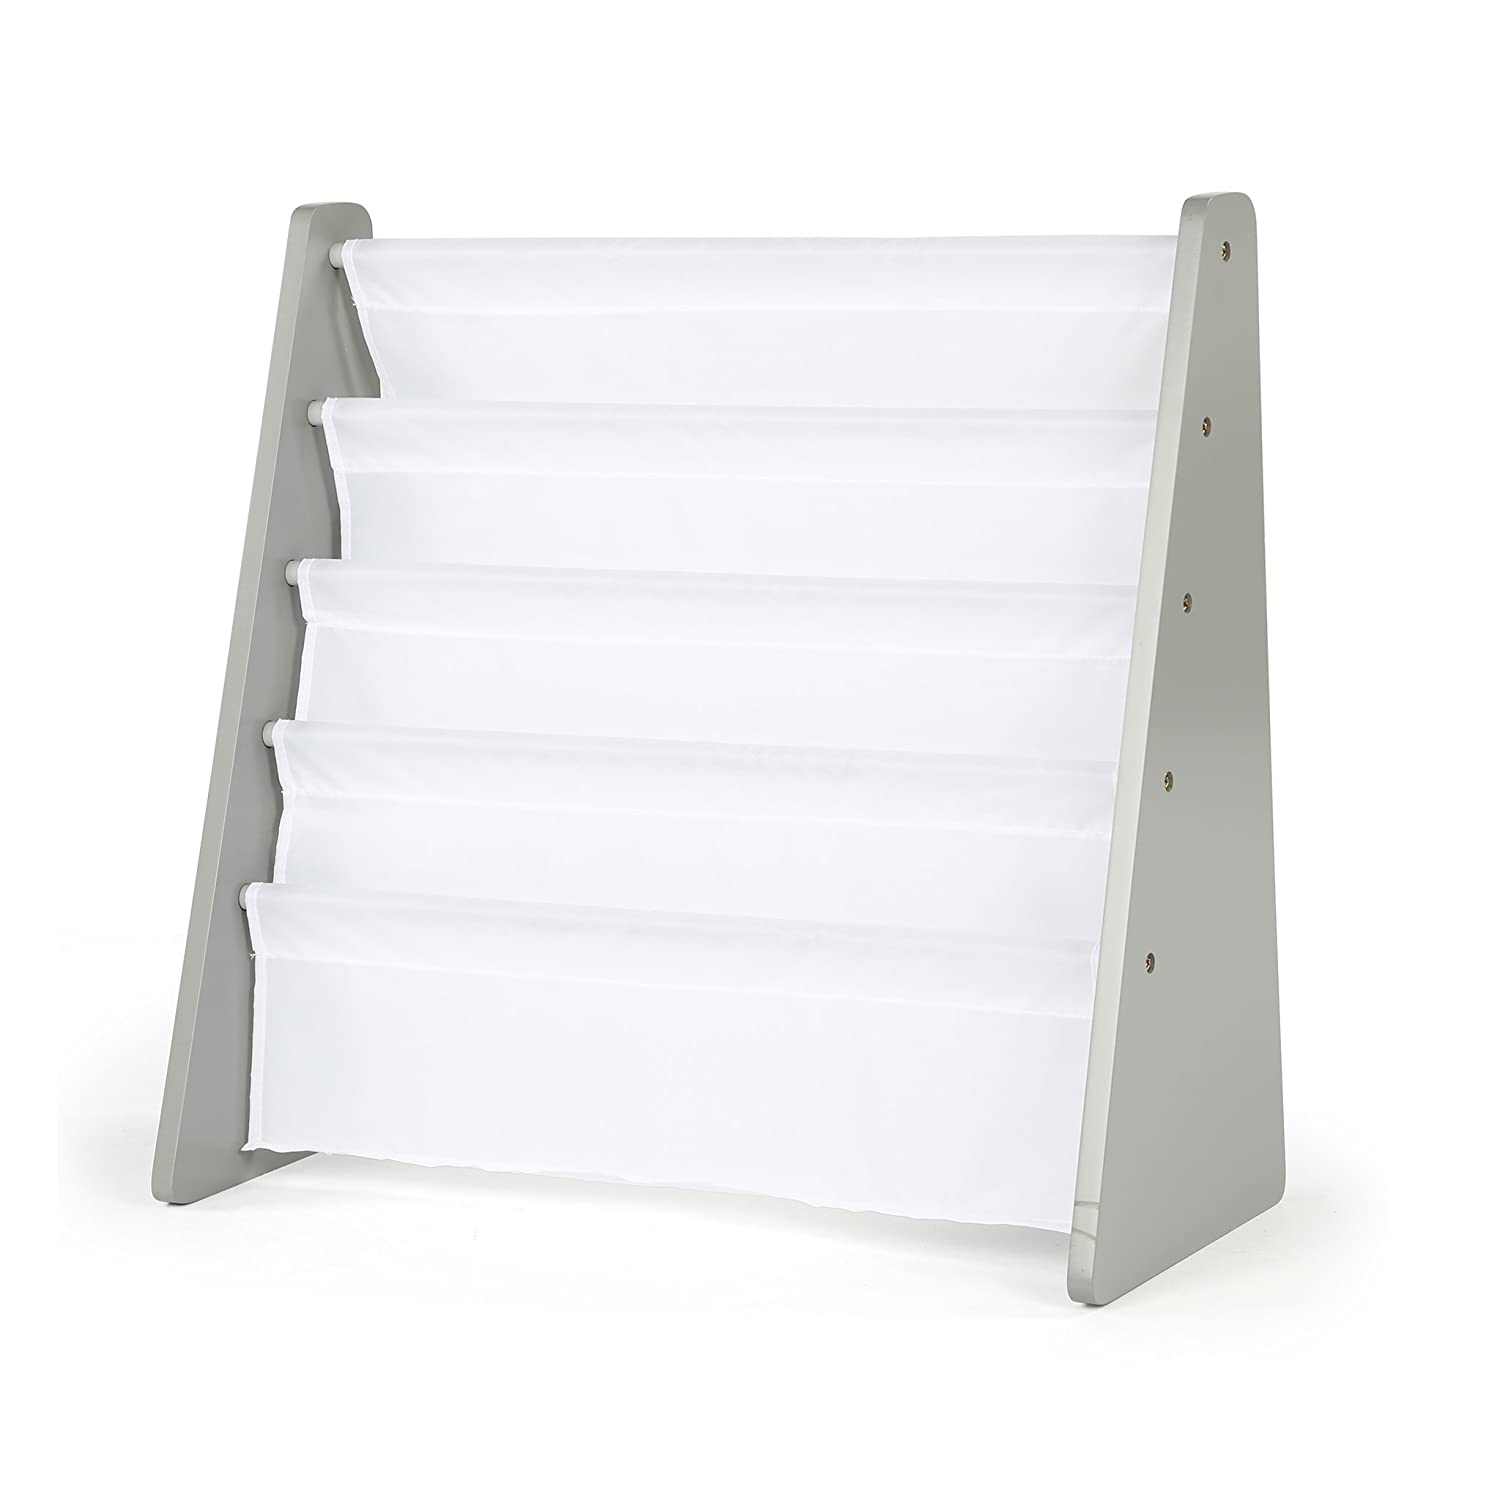 Stores Tot Tutors, Inc. WO671 Book Rack, Grey/White